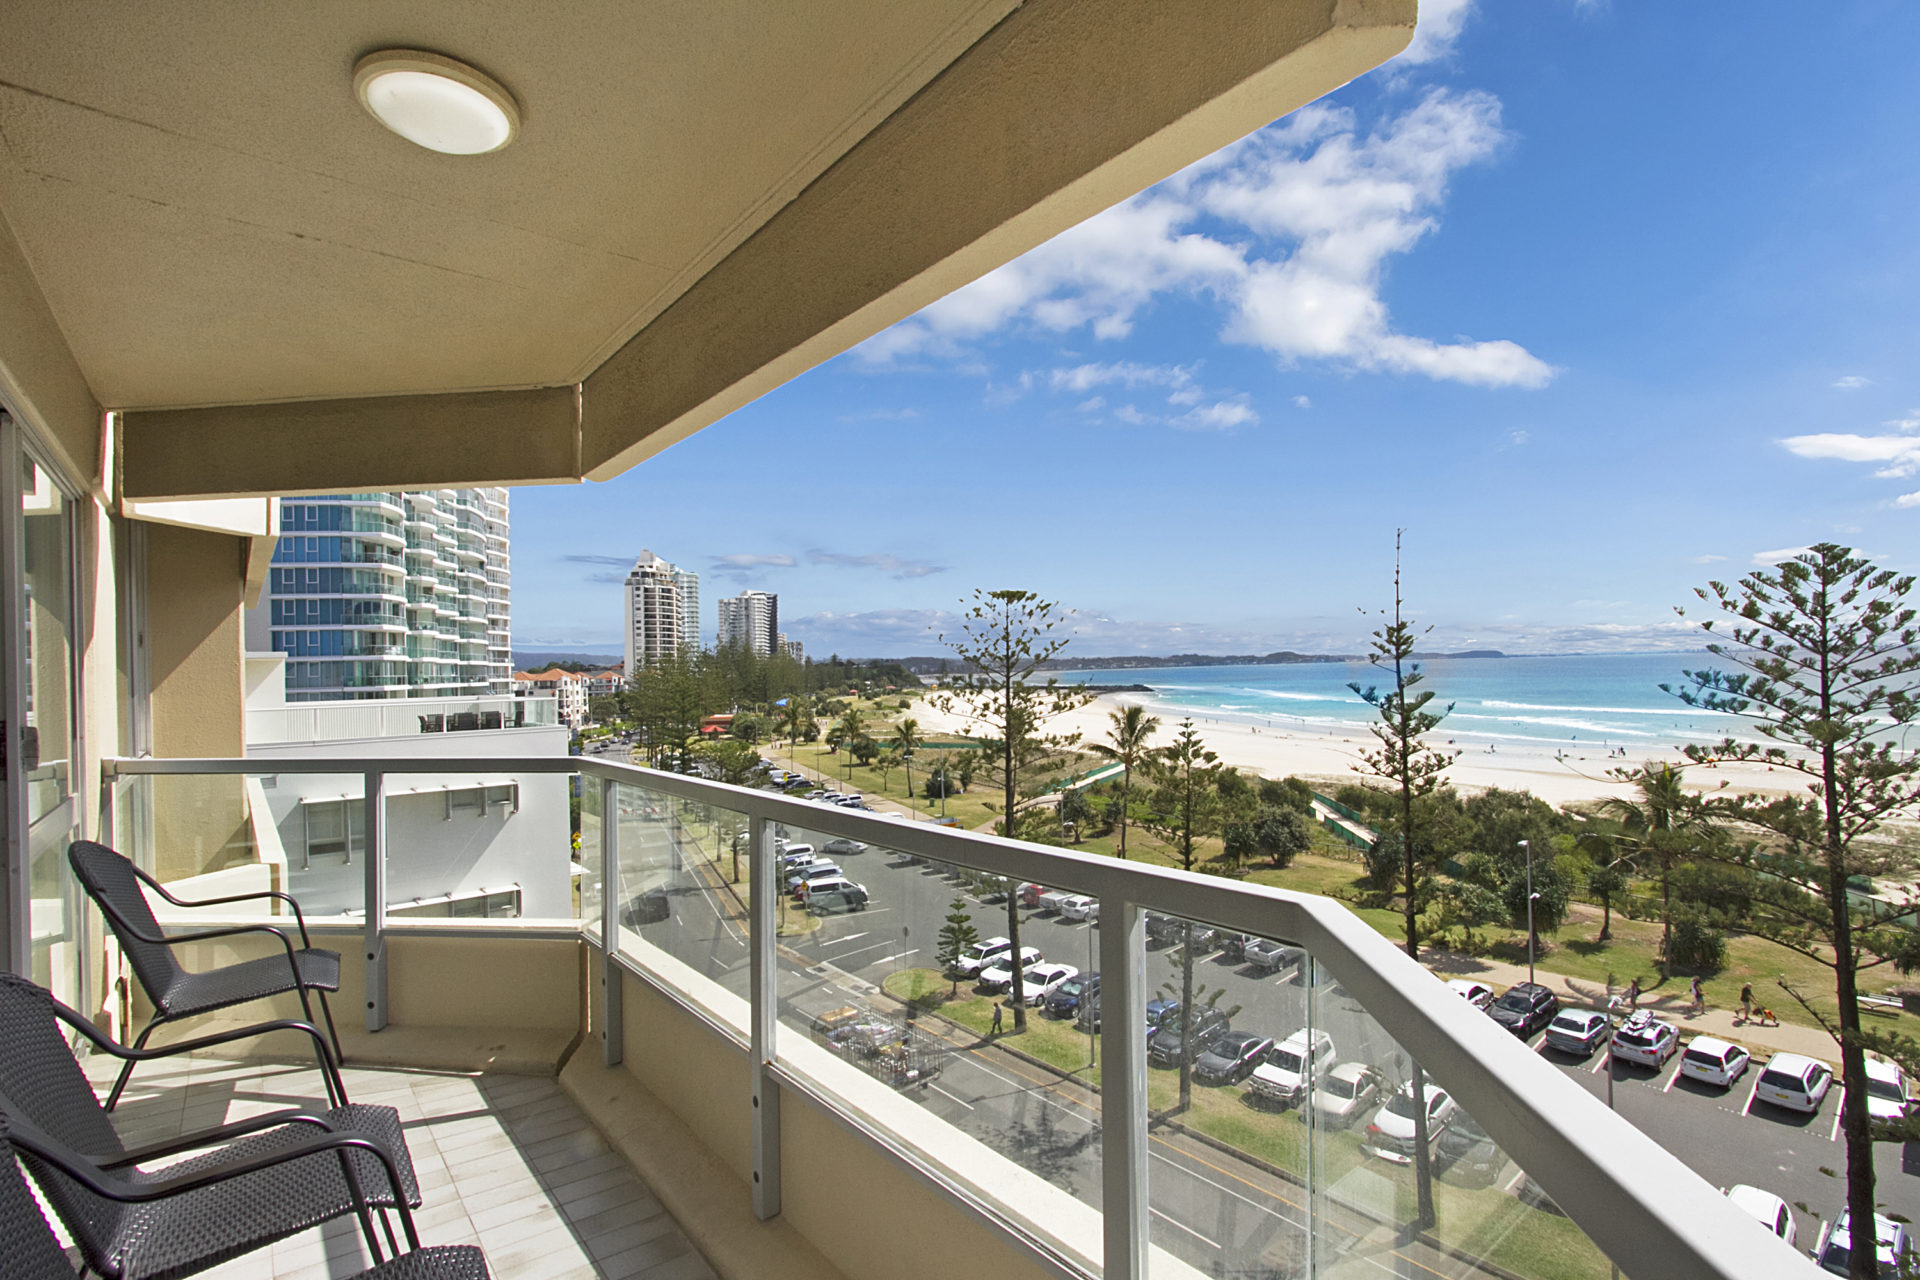 Tv For Sale Canberra 19 130 Marine Parade Coolangatta Real Estate For Rent